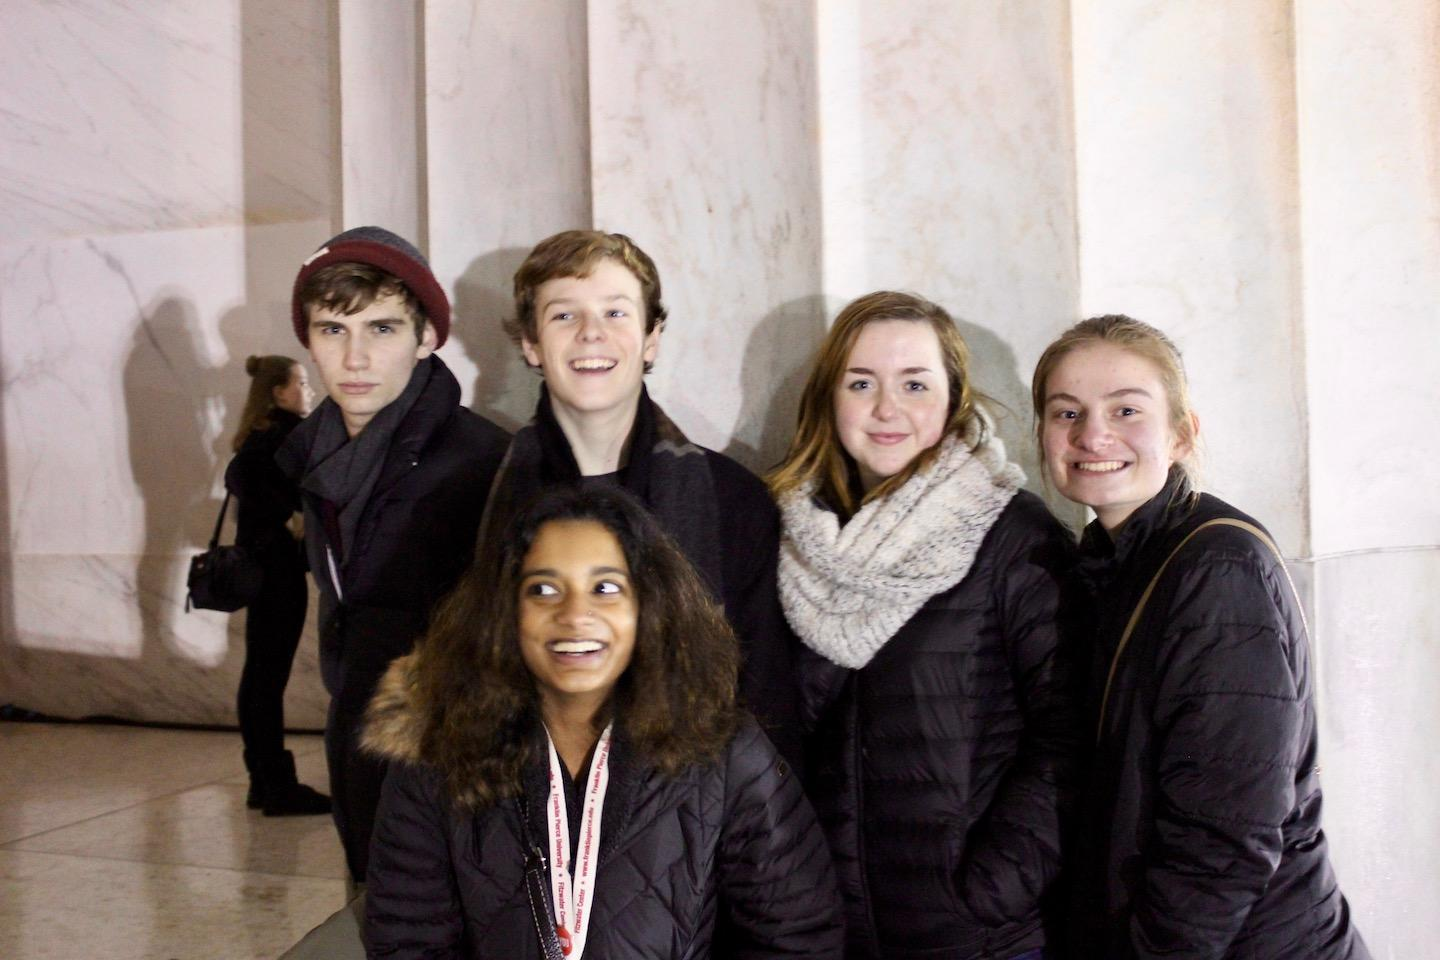 Partially+candid%2C+mostly+posed+%0ALeft+to+Right%3A+Jason+Frank+%28ConVal%29%2C+Seth+Facey%2C+Meghana+Reddy%2C+Anna+Waldron%2C+Sophie+Nikolenko%0A